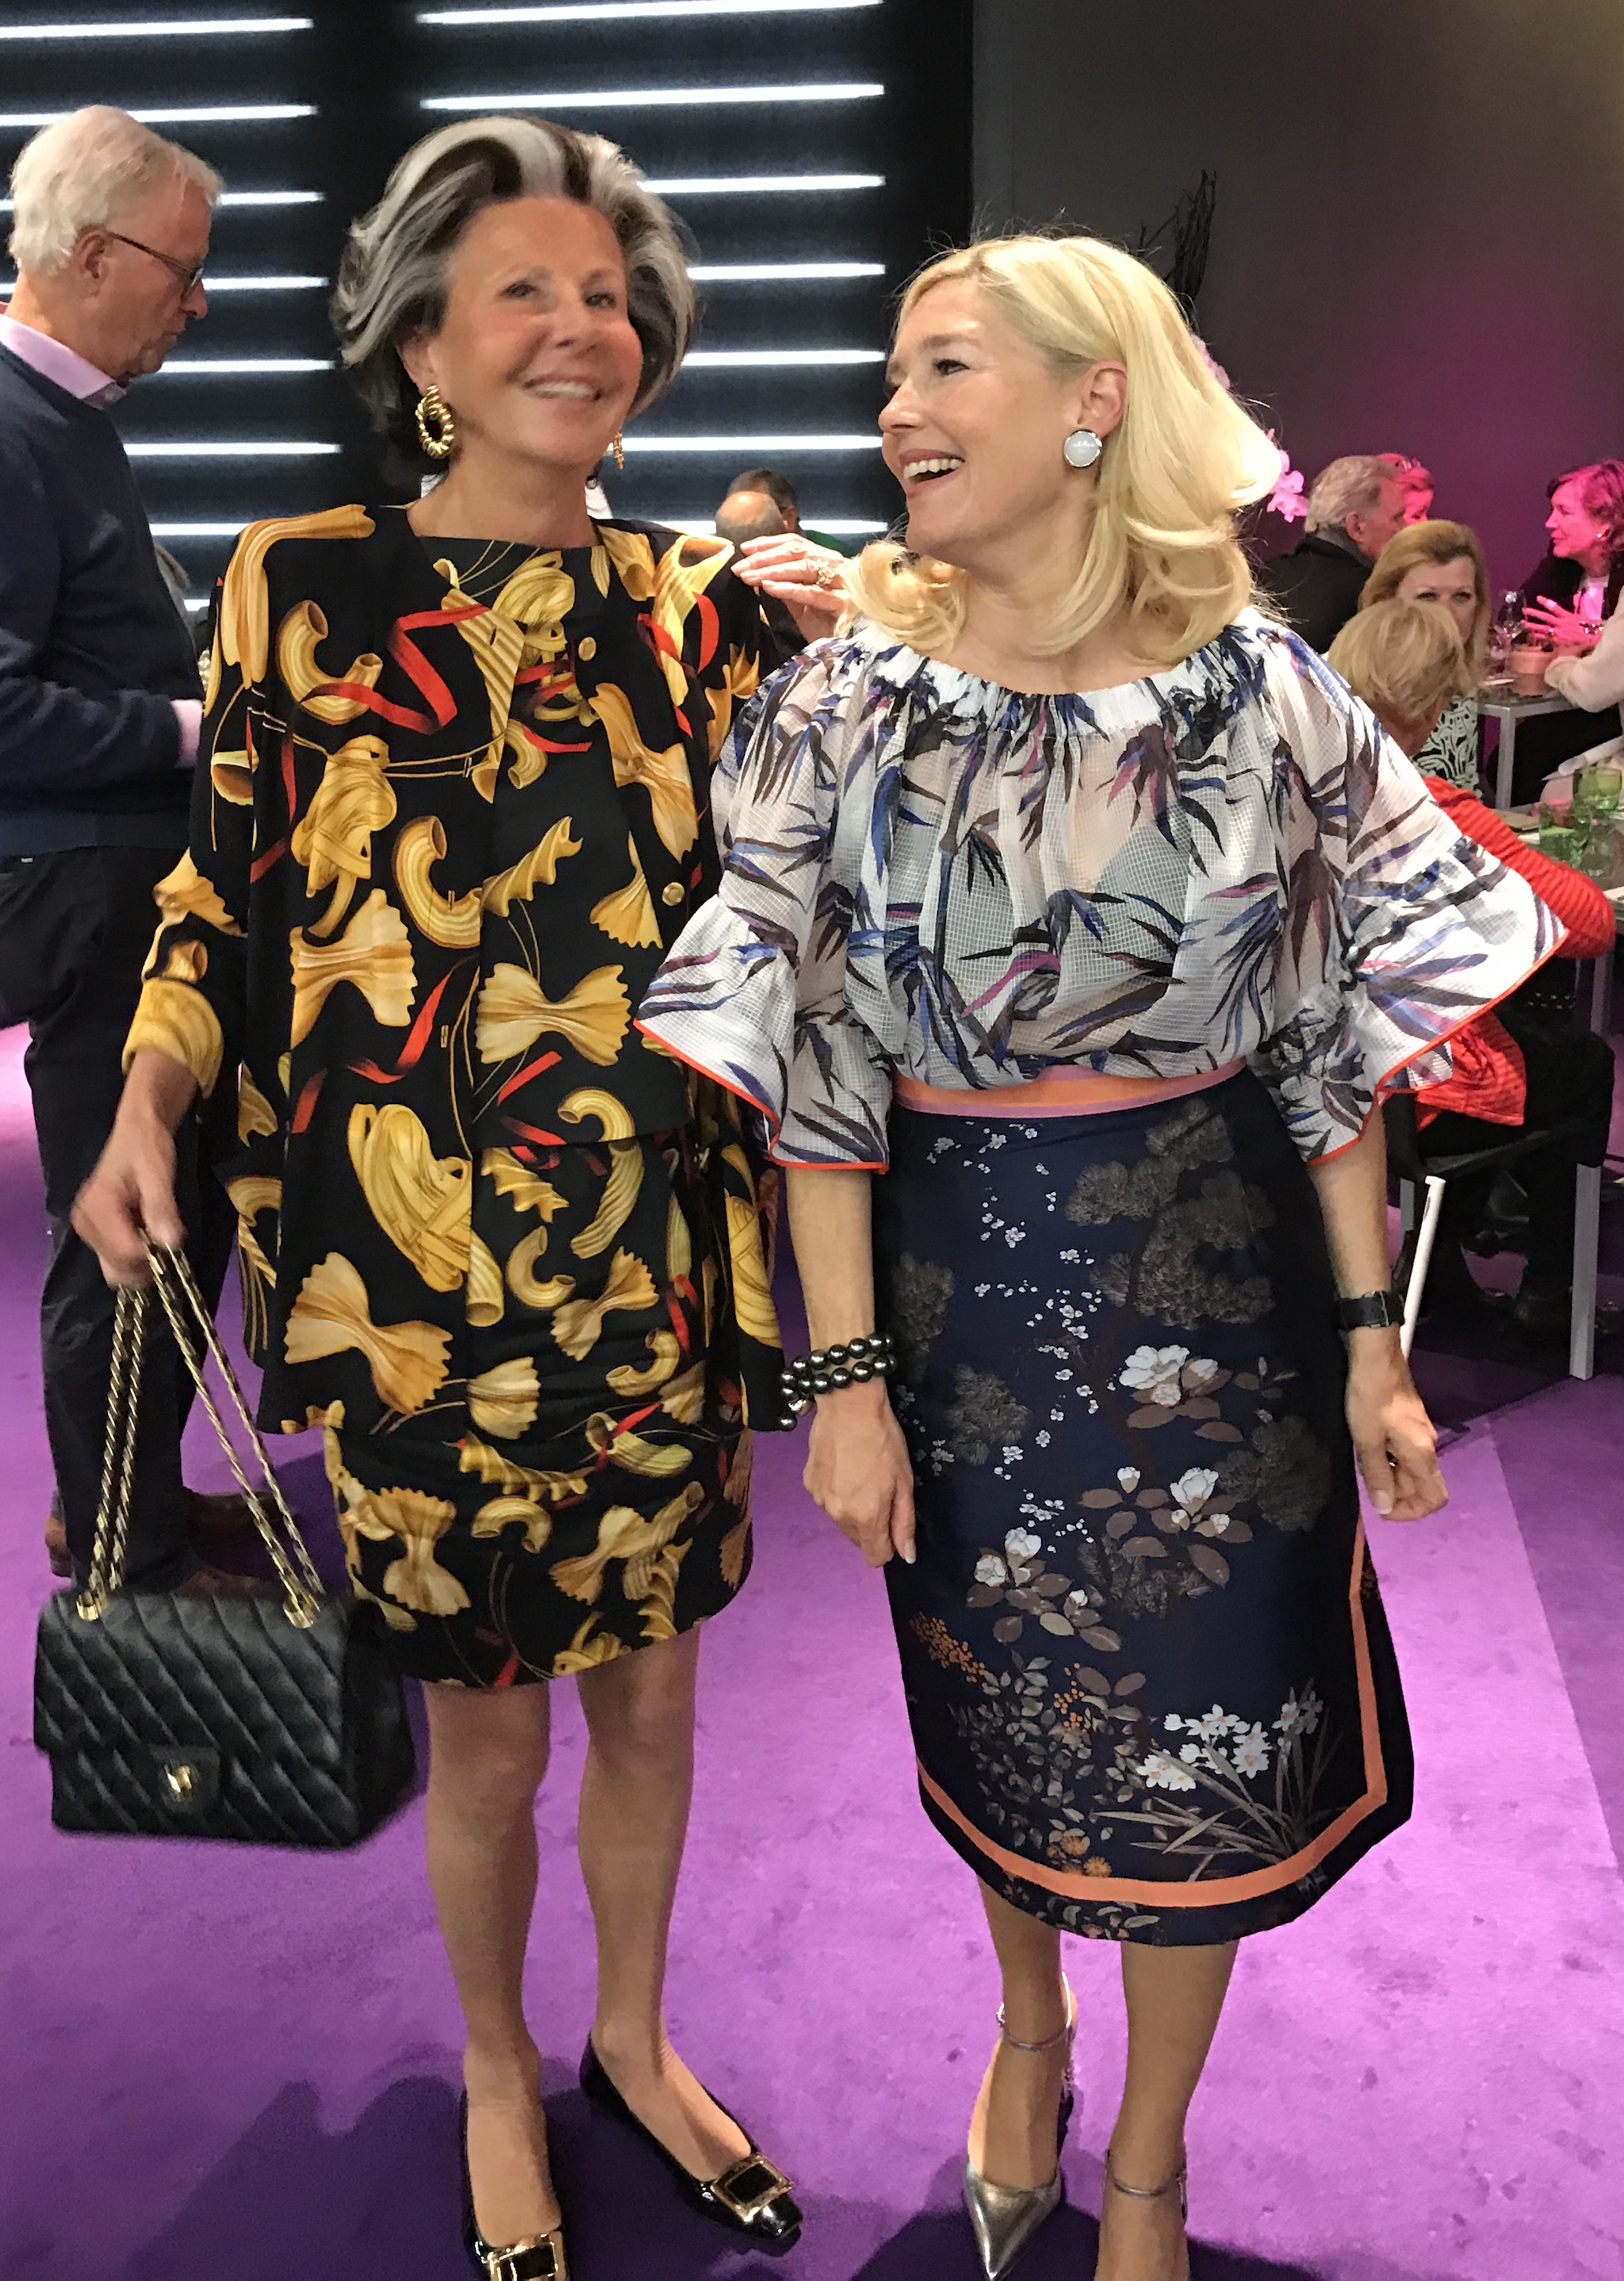 Christina Sieger, Petra Dieners, Ladies Lunch Art Cologne, Fashion-Blog, Lieblingsstil.com,